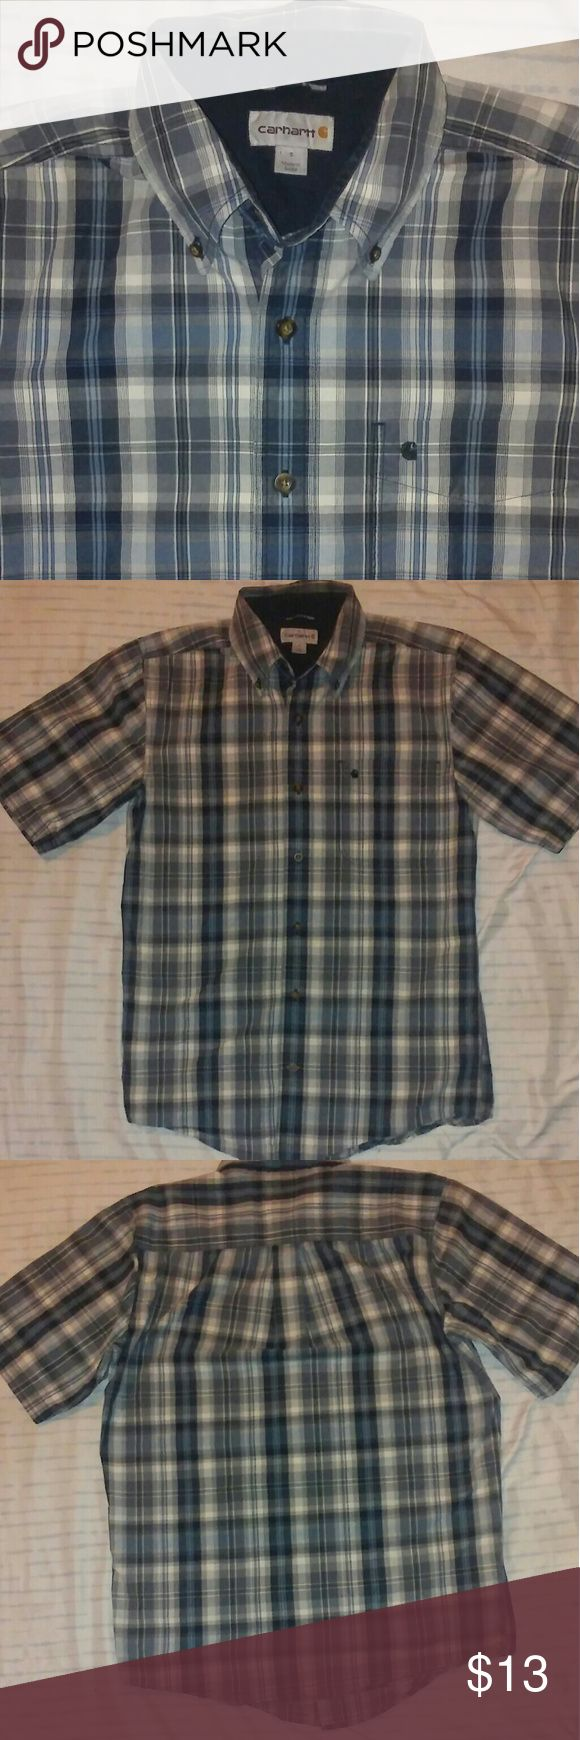 Carhartt Brand Small Button Down Flannel! This small button down is a short sleeve. Great brand. Has a still new feel to it. Thick material. Good work shirt. Blue color scheme. Carhartt Shirts Casual Button Down Shirts